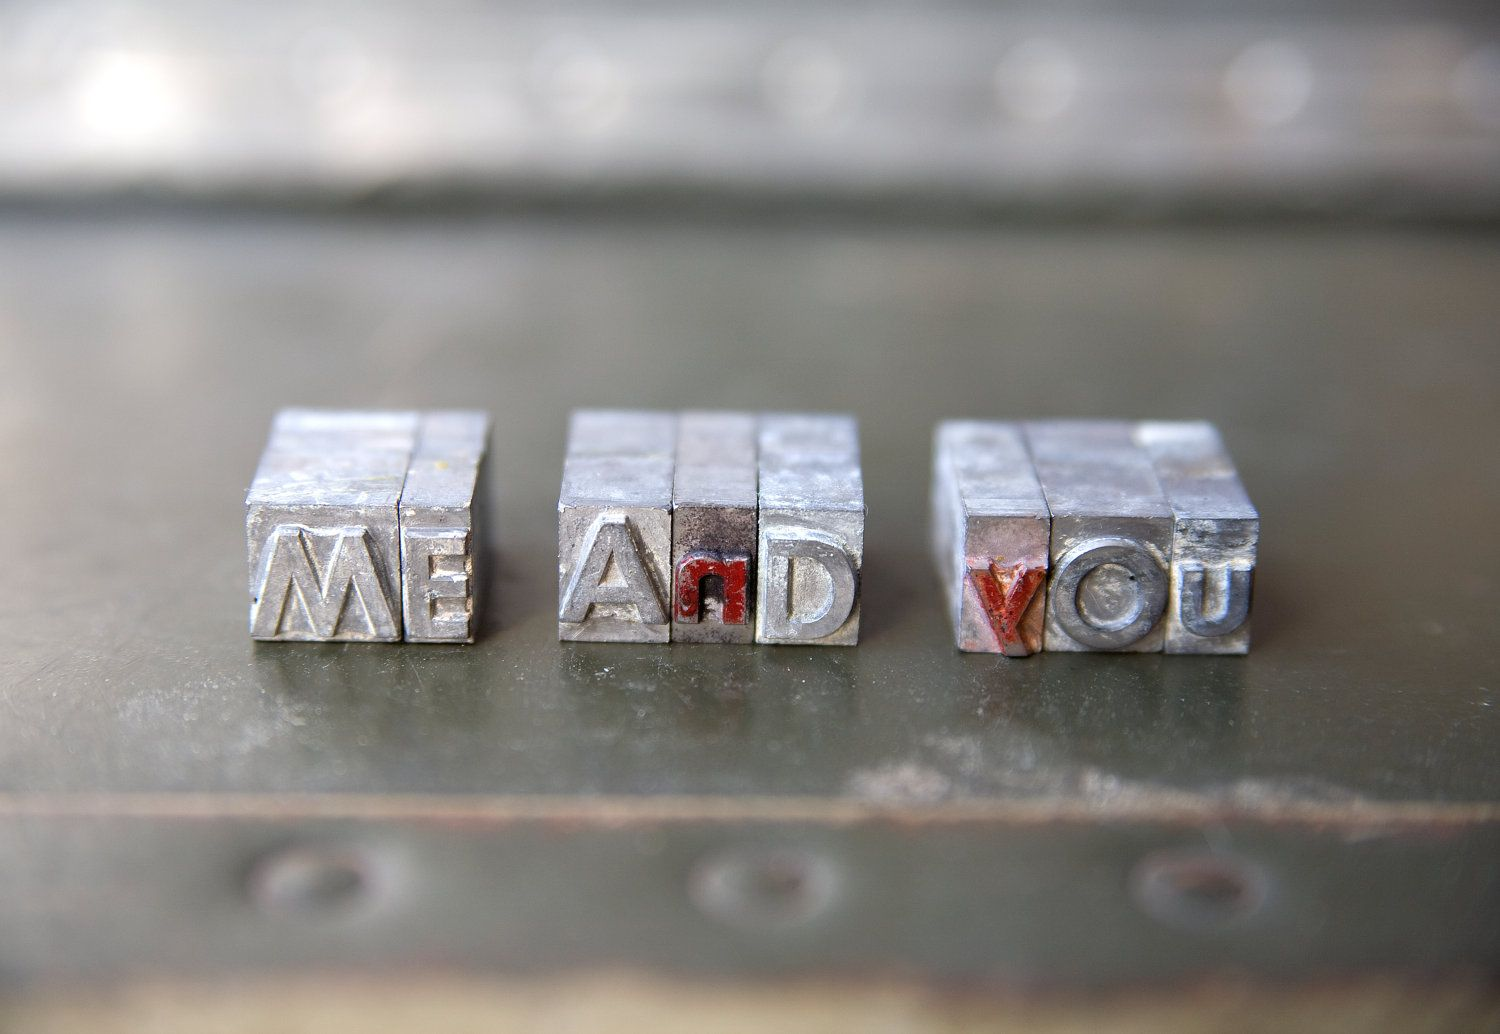 Vintage Letterpress Letters - Me and you